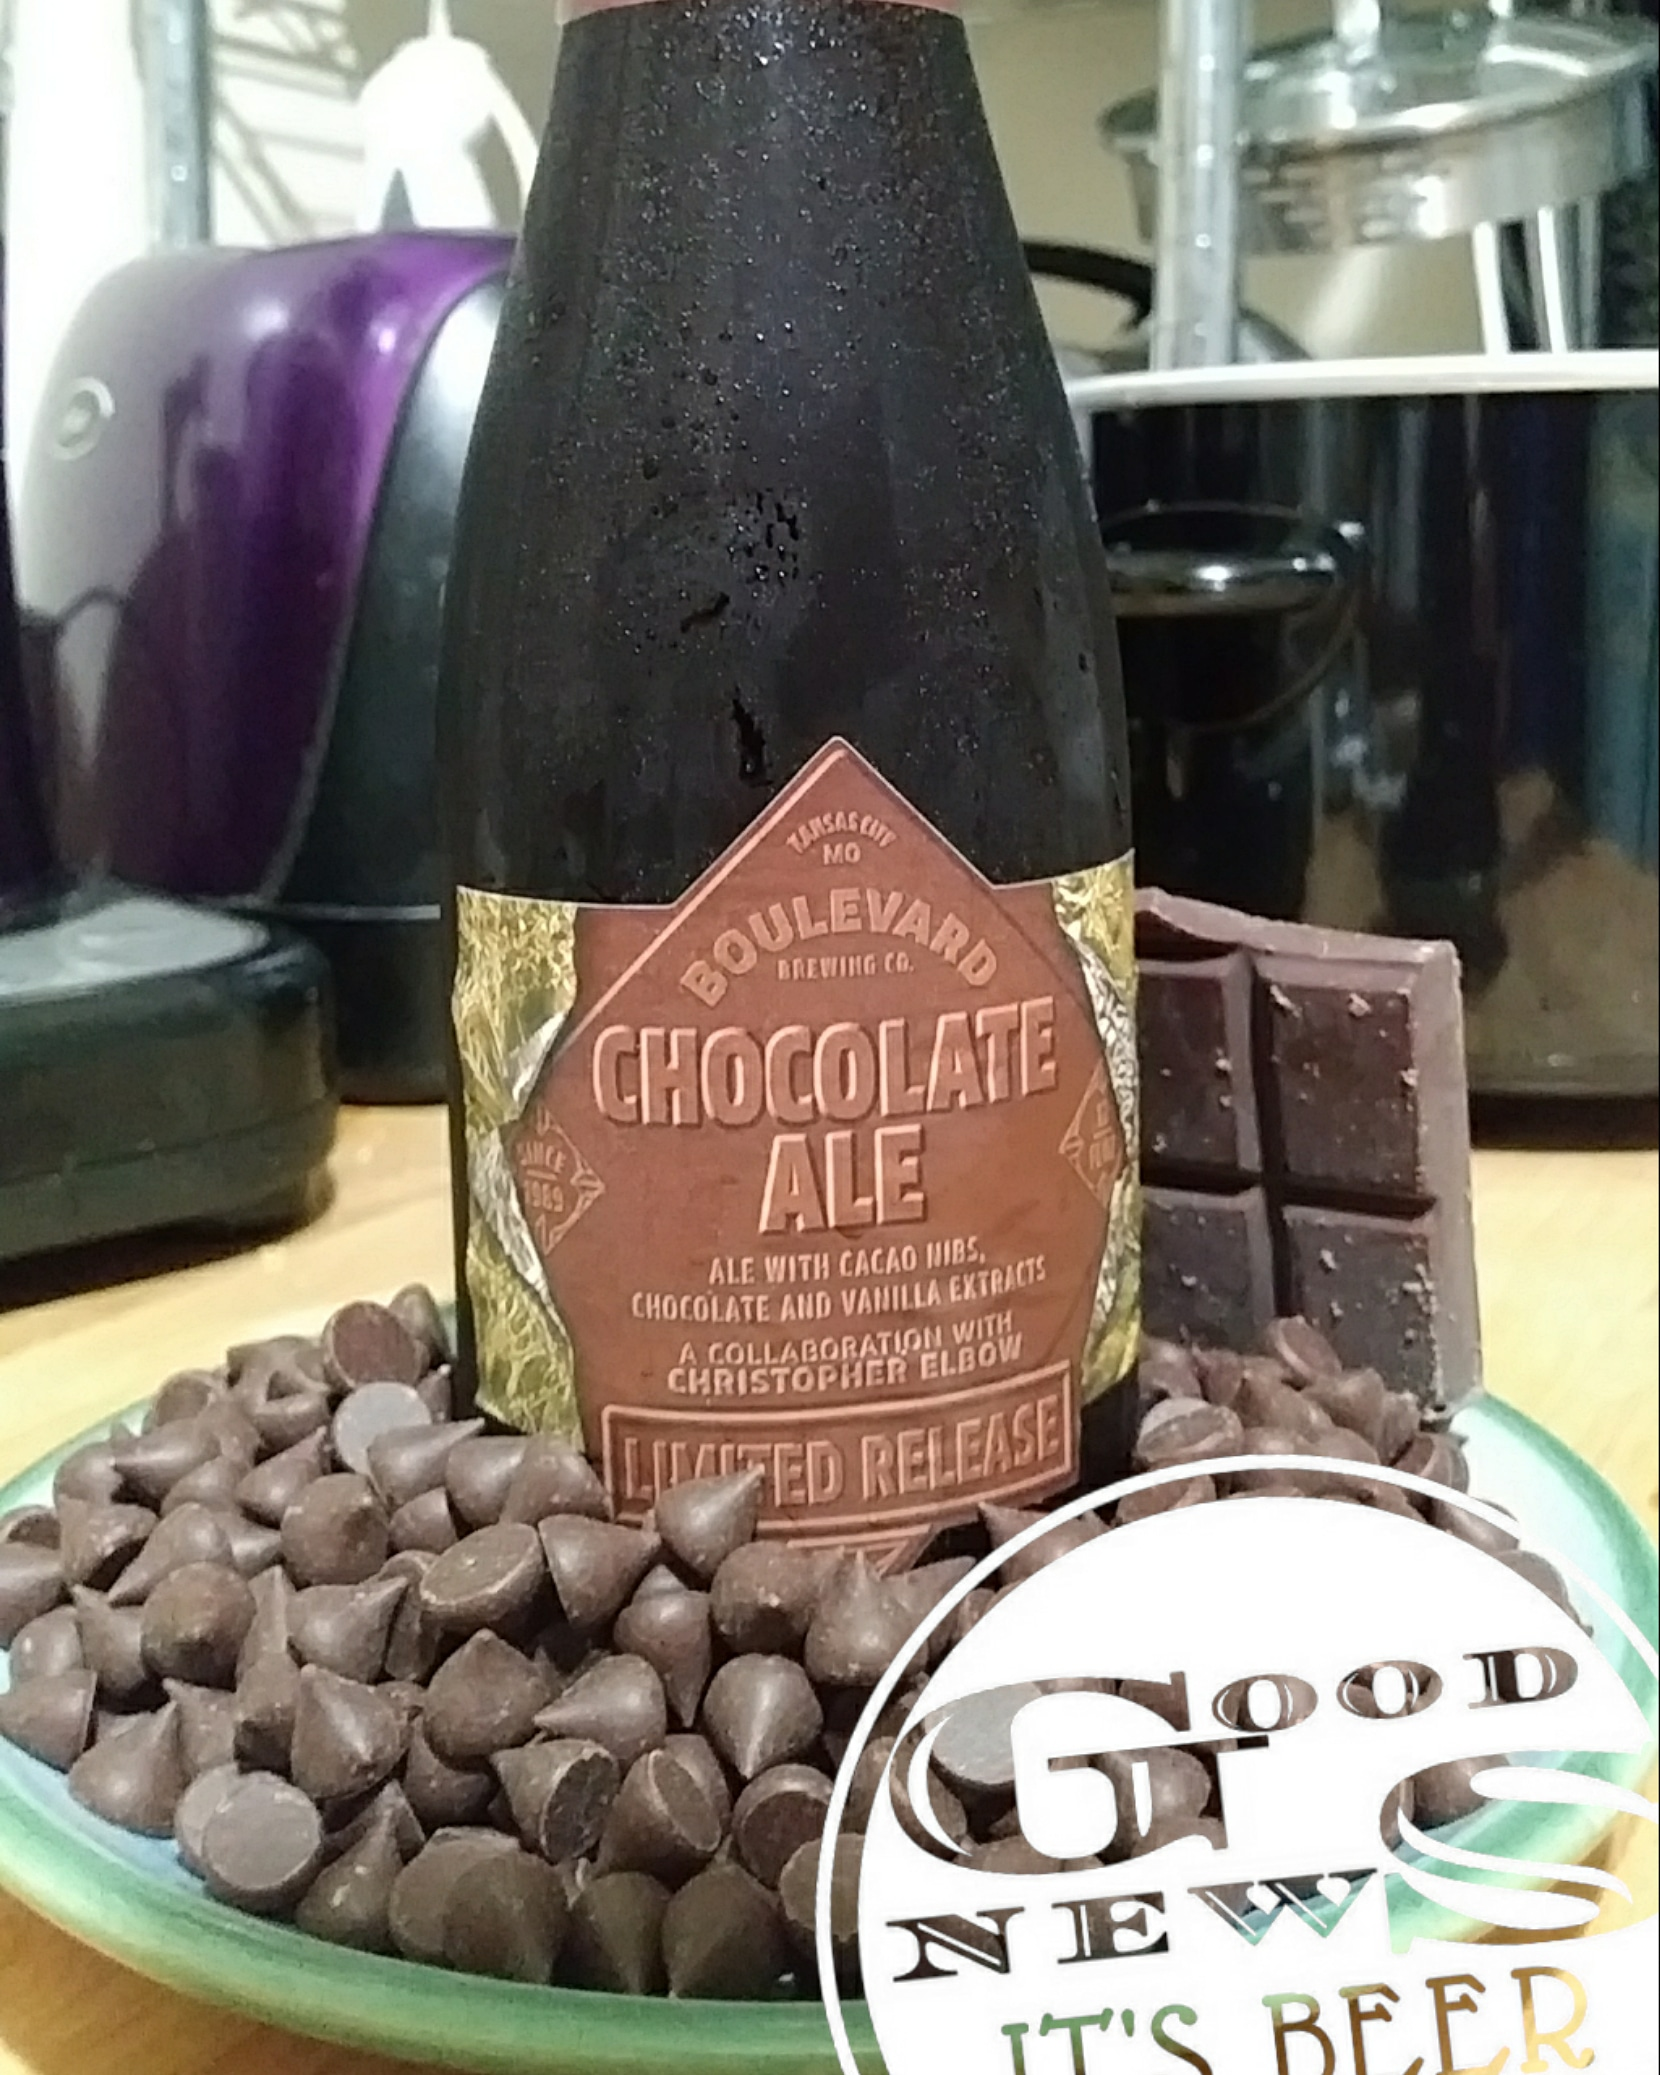 Chocolate Ale, with Chocolate and More Chocolate. - Boulevard Brewing makes an excellent chocolate ale, and what better food to pair it with than more chocolate! And maybe vanilla ice cream. This beer was great for sipping, and when it got a little warmer more flavors came out.For me the best part is that it doesn't have lactose. These days it's getting hard to find a nice, dark, rich, tasty ale or stout that doesn't have lactose. No Bueno for those of us with intolerances.